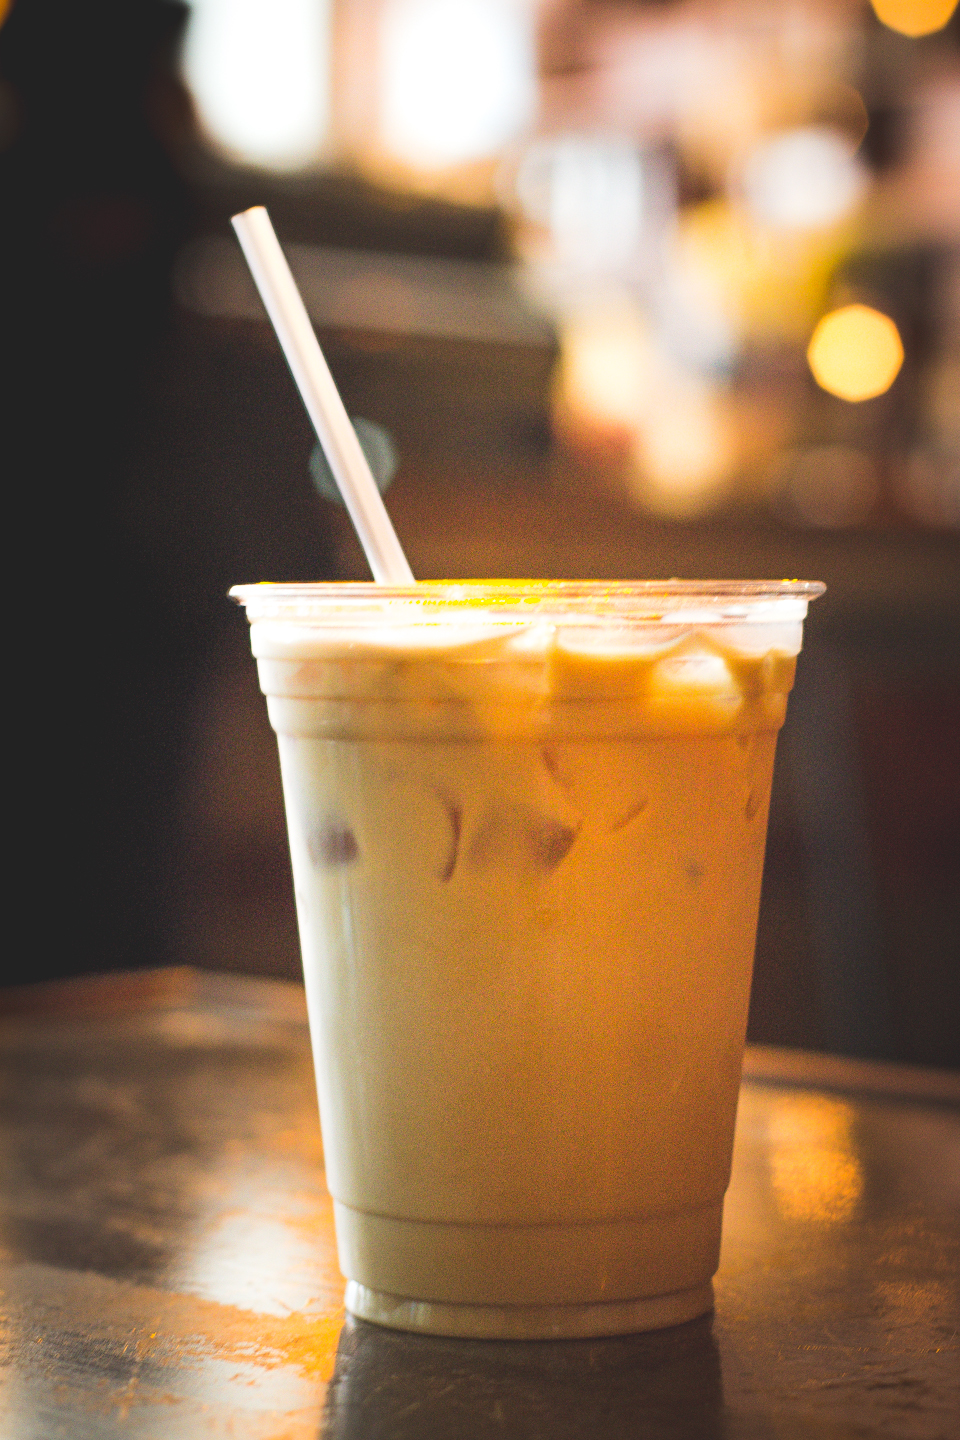 A delectable iced chai latte, at Panther coffee, a cool coffee house in Sunset Harbor, Miami Beach, FL.